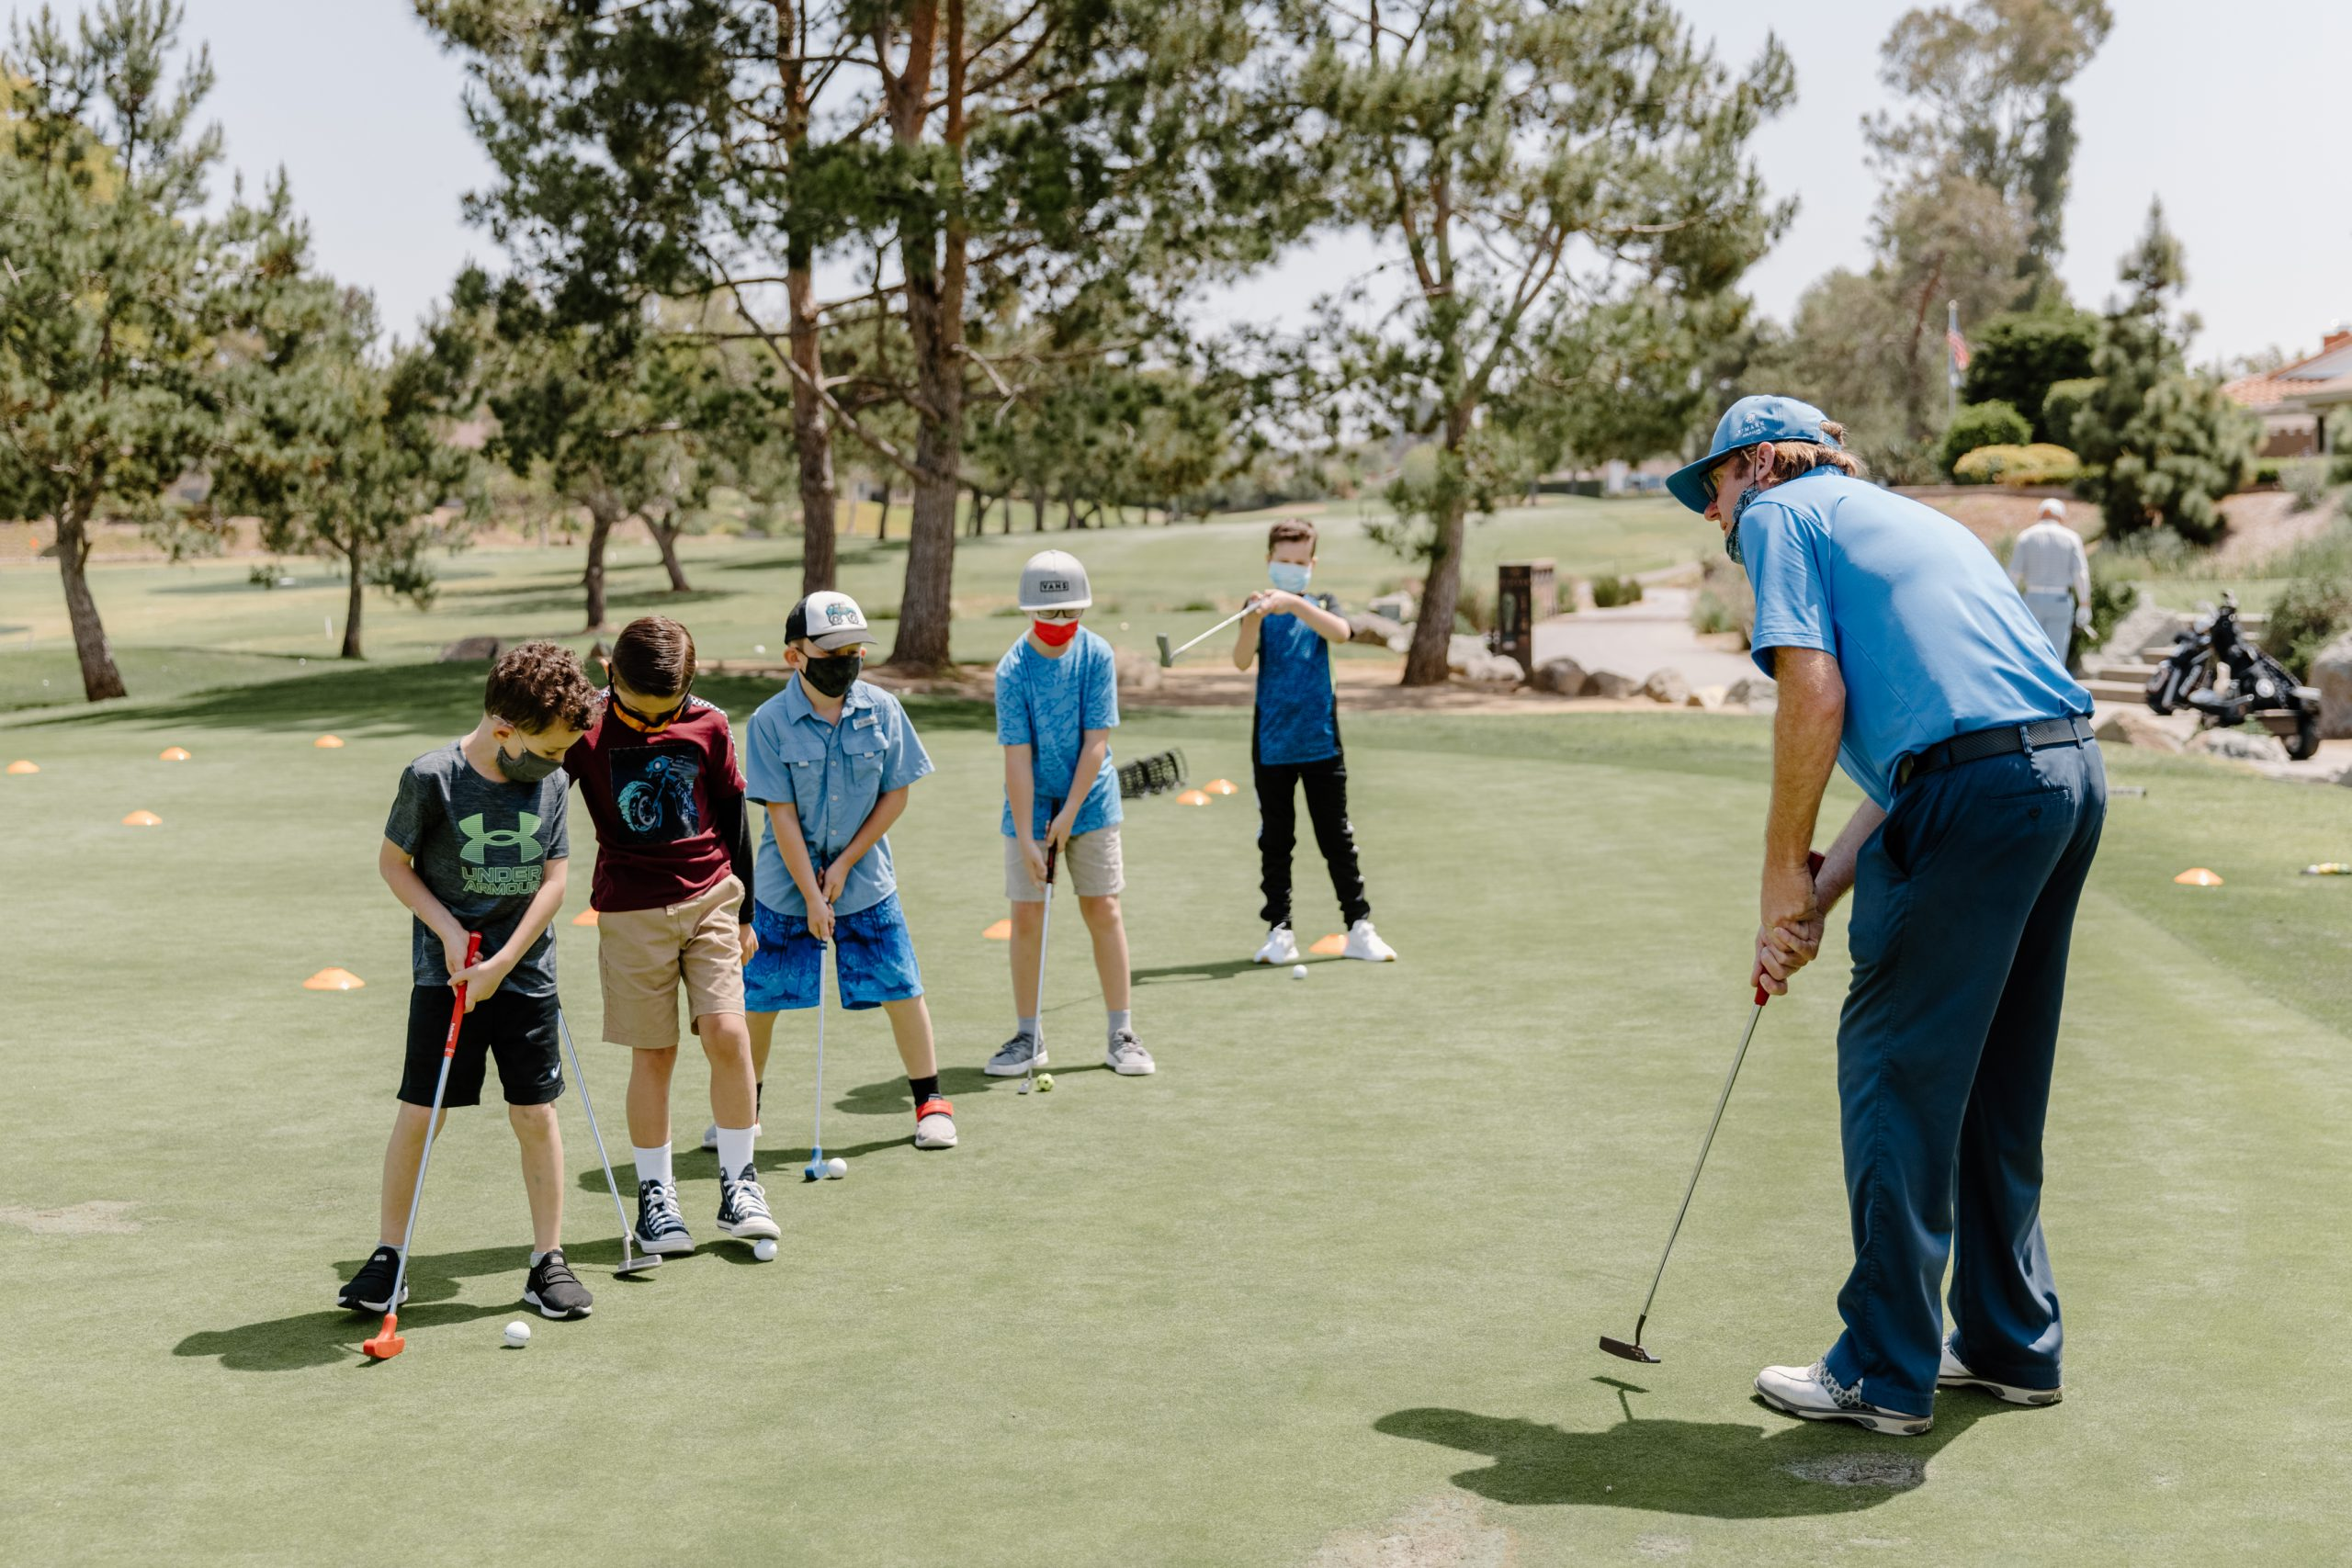 Kids getting a golf lesson